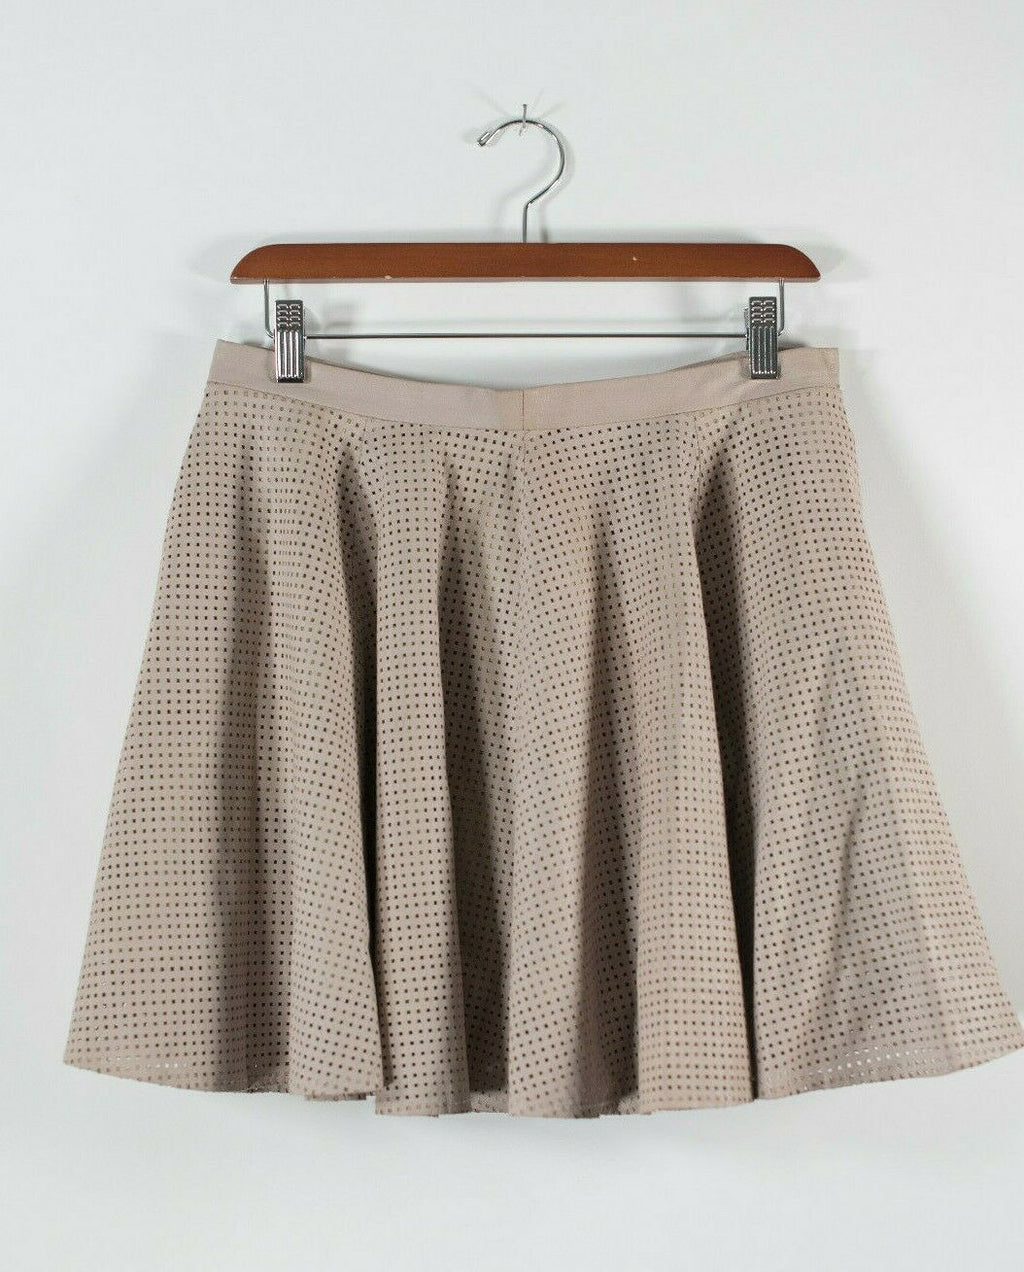 LaMarque Womens Size 6 Small Beige Mini Skirt Leather Laser Cut Short Lined Mini